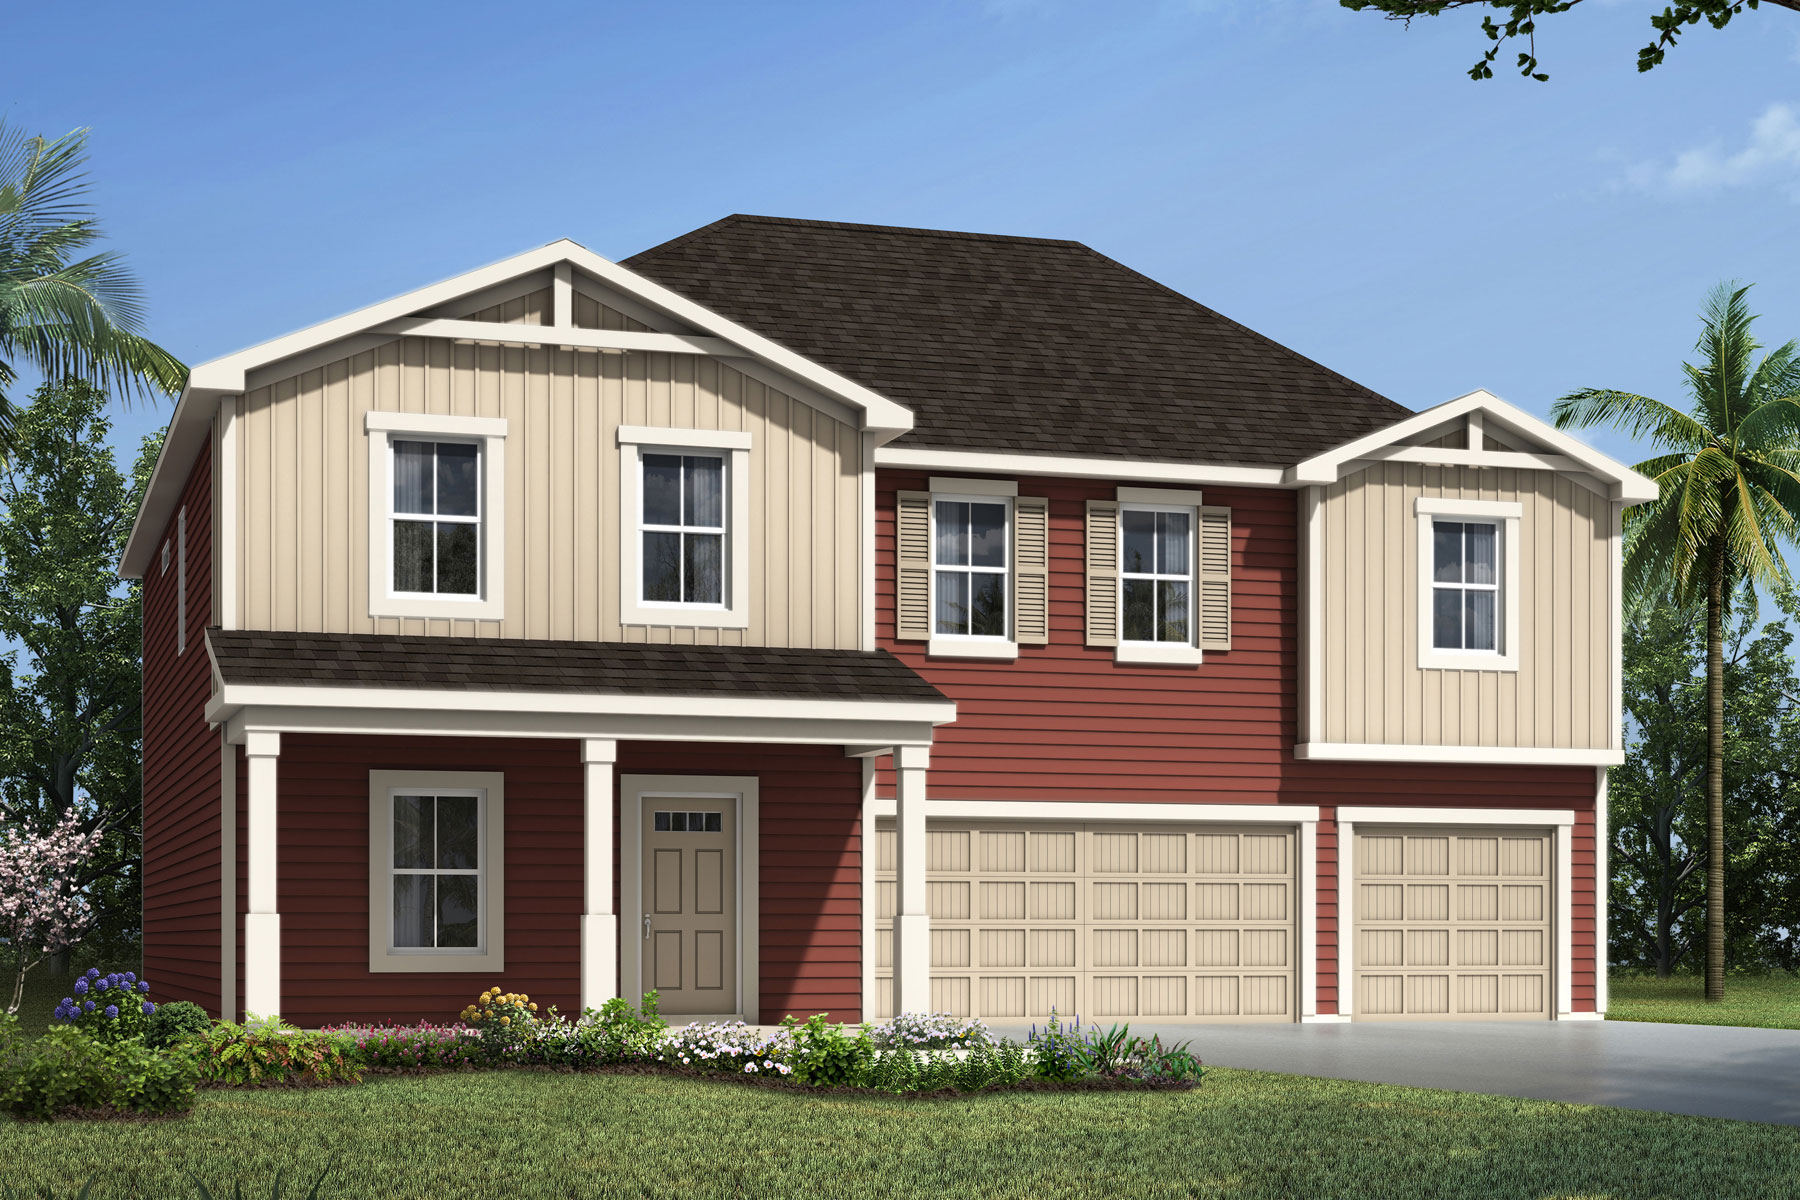 Marshall Plan jax_marhsall_farmhouse at RiverTown - Haven in St. Johns Florida by Mattamy Homes